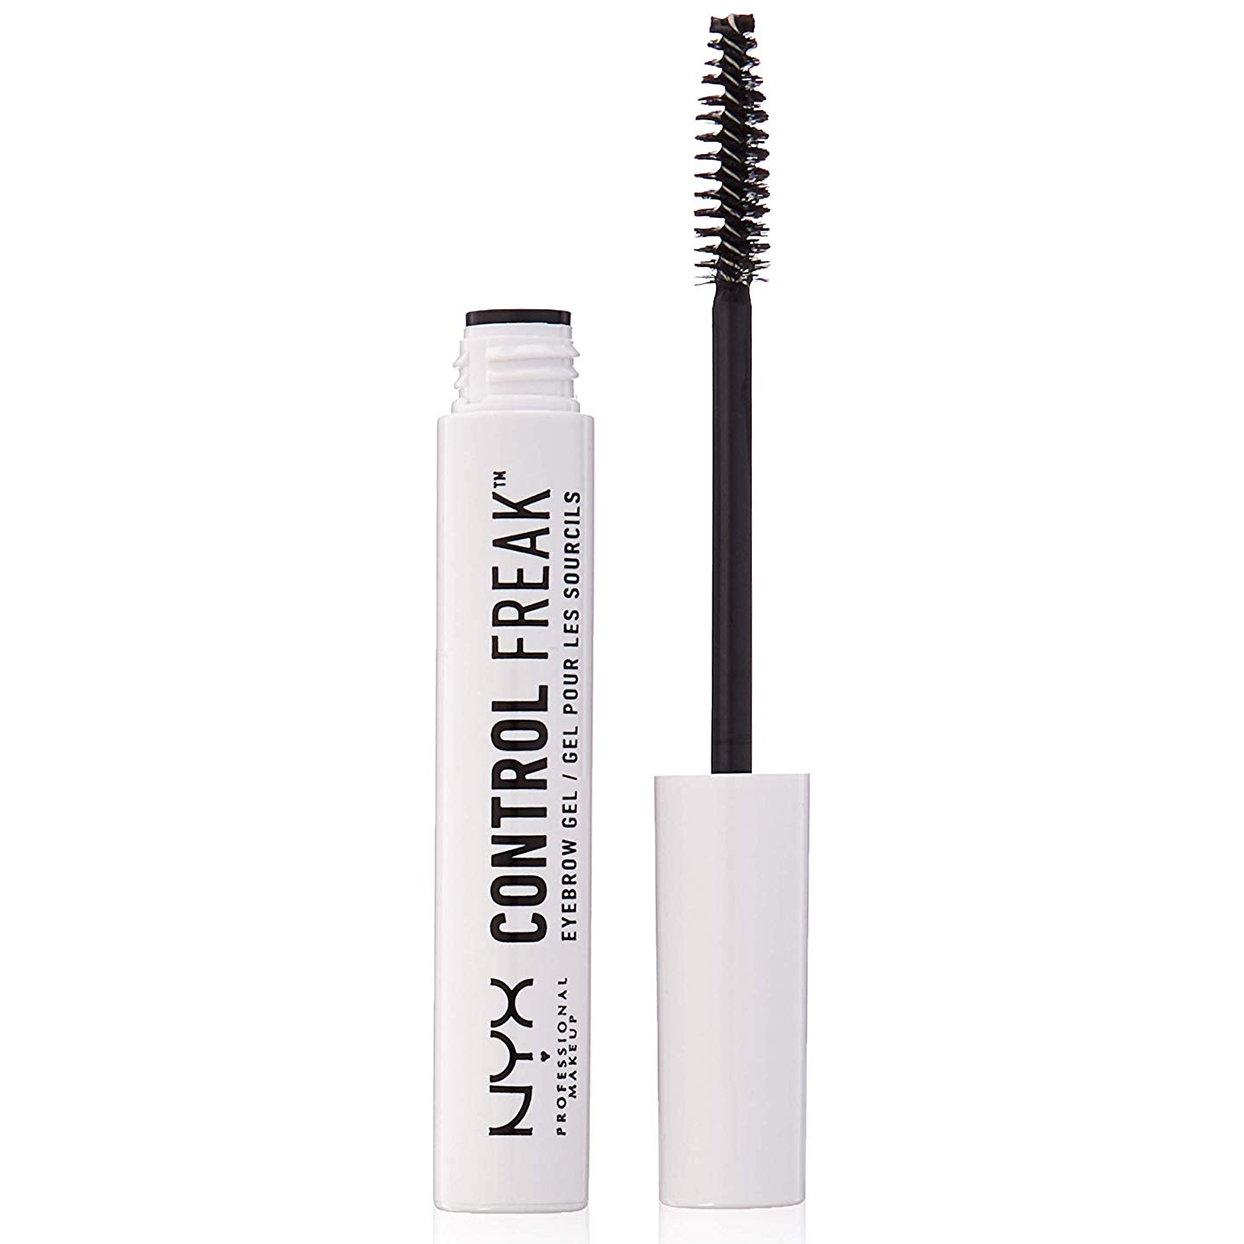 nyx-professional-makeup-control-freak-eyebrow-gel.jpg